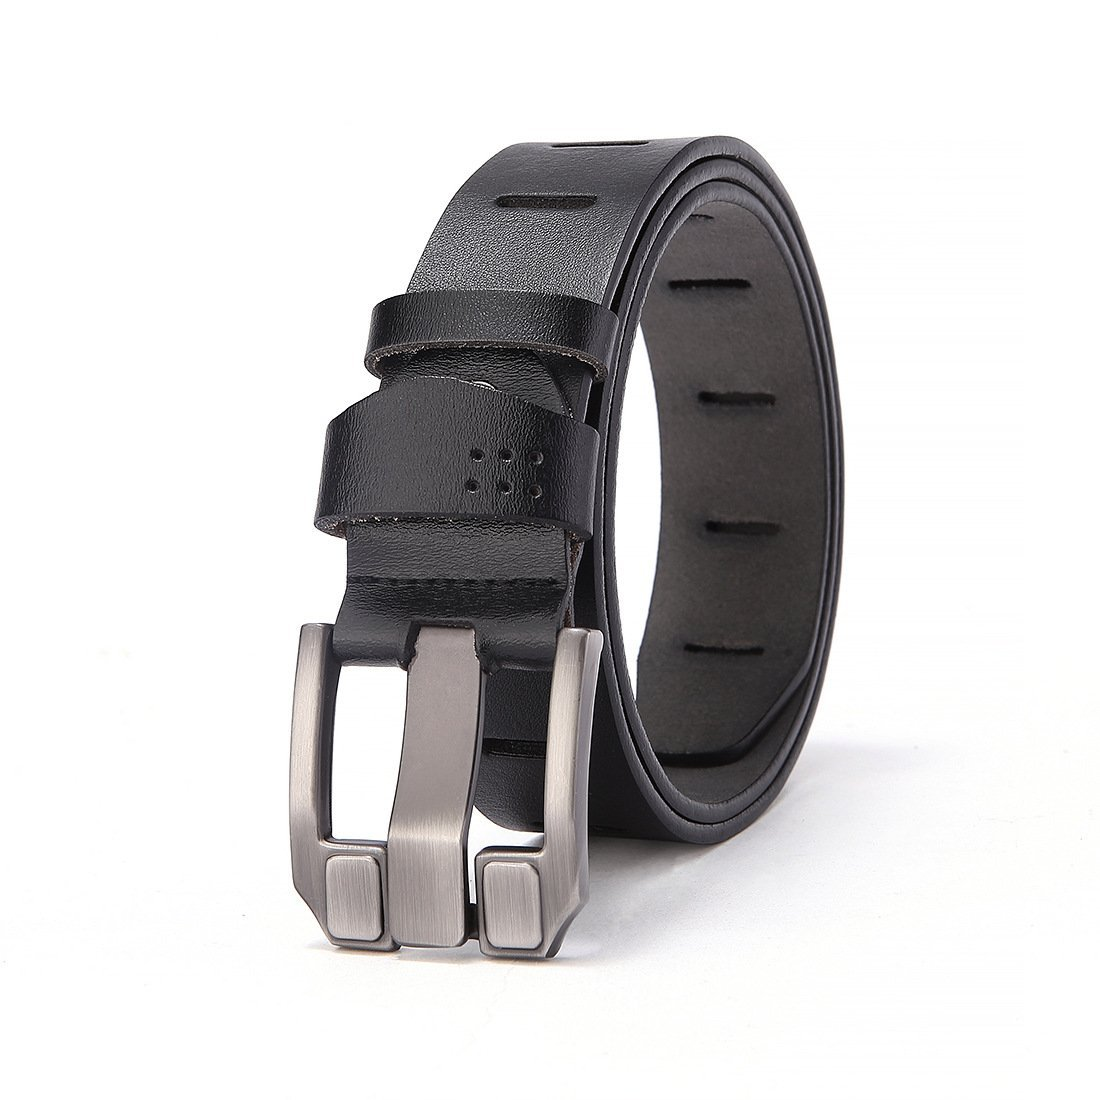 Pin Buckle Adjustable,Anti-Scratch Pin Buckle,Stylish Formal Business Work,Jeans /& Casual Wear /& Cowboy Wear /& Work Clothes Uniforms,A,115 XUEXUE Mens Business Belt